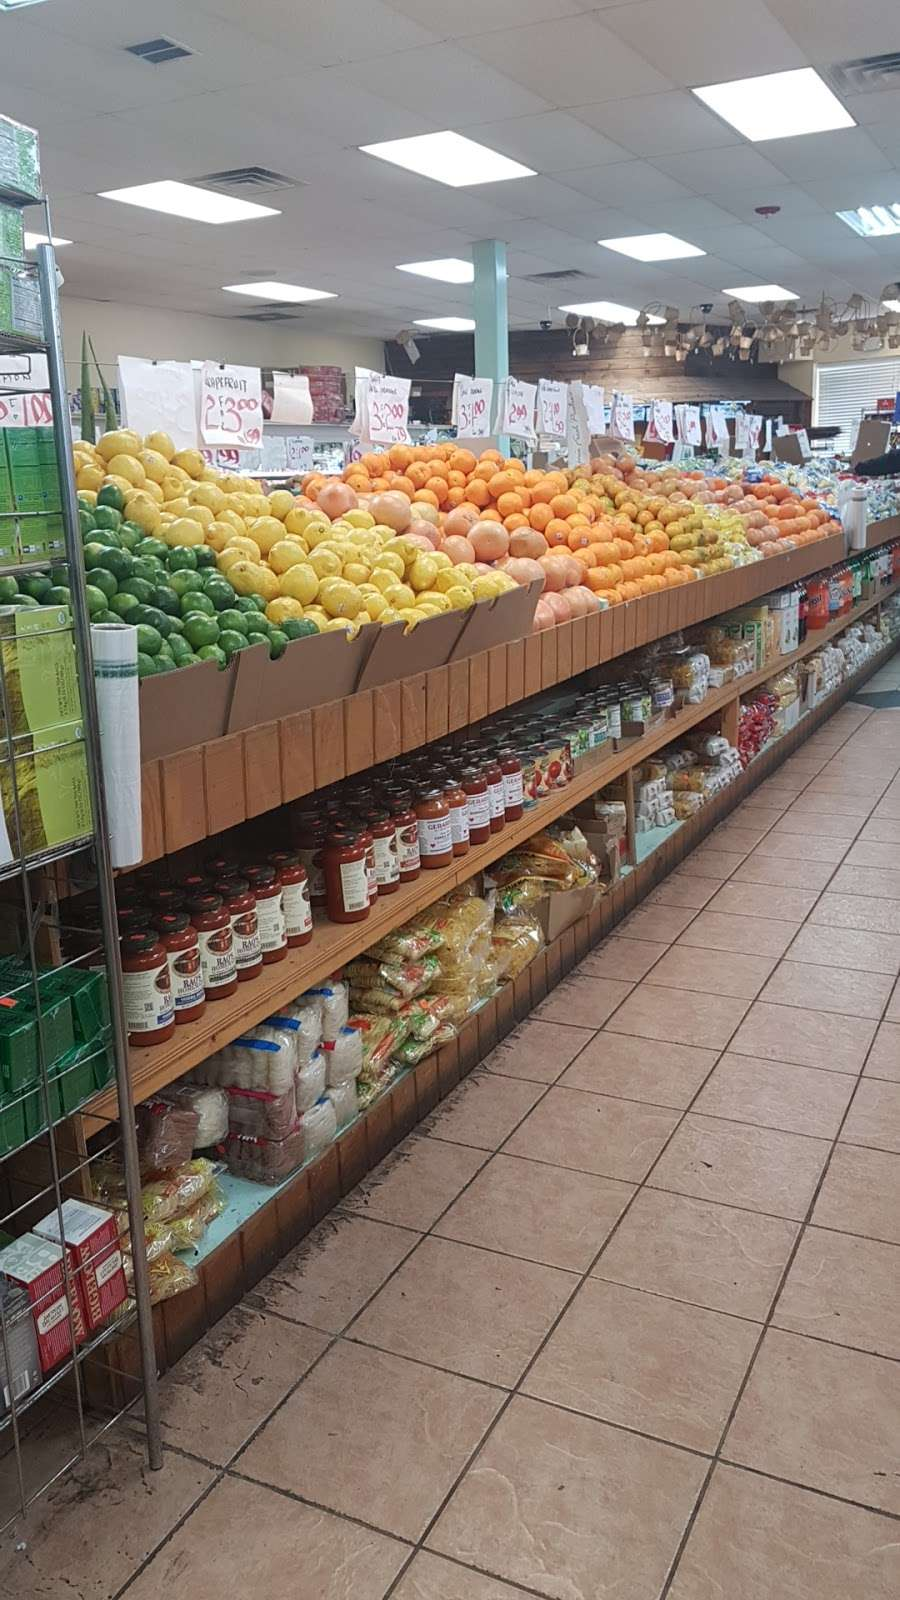 Verdi Fresh - store  | Photo 2 of 2 | Address: Budd Lake, NJ 07828, USA | Phone: (973) 347-0261